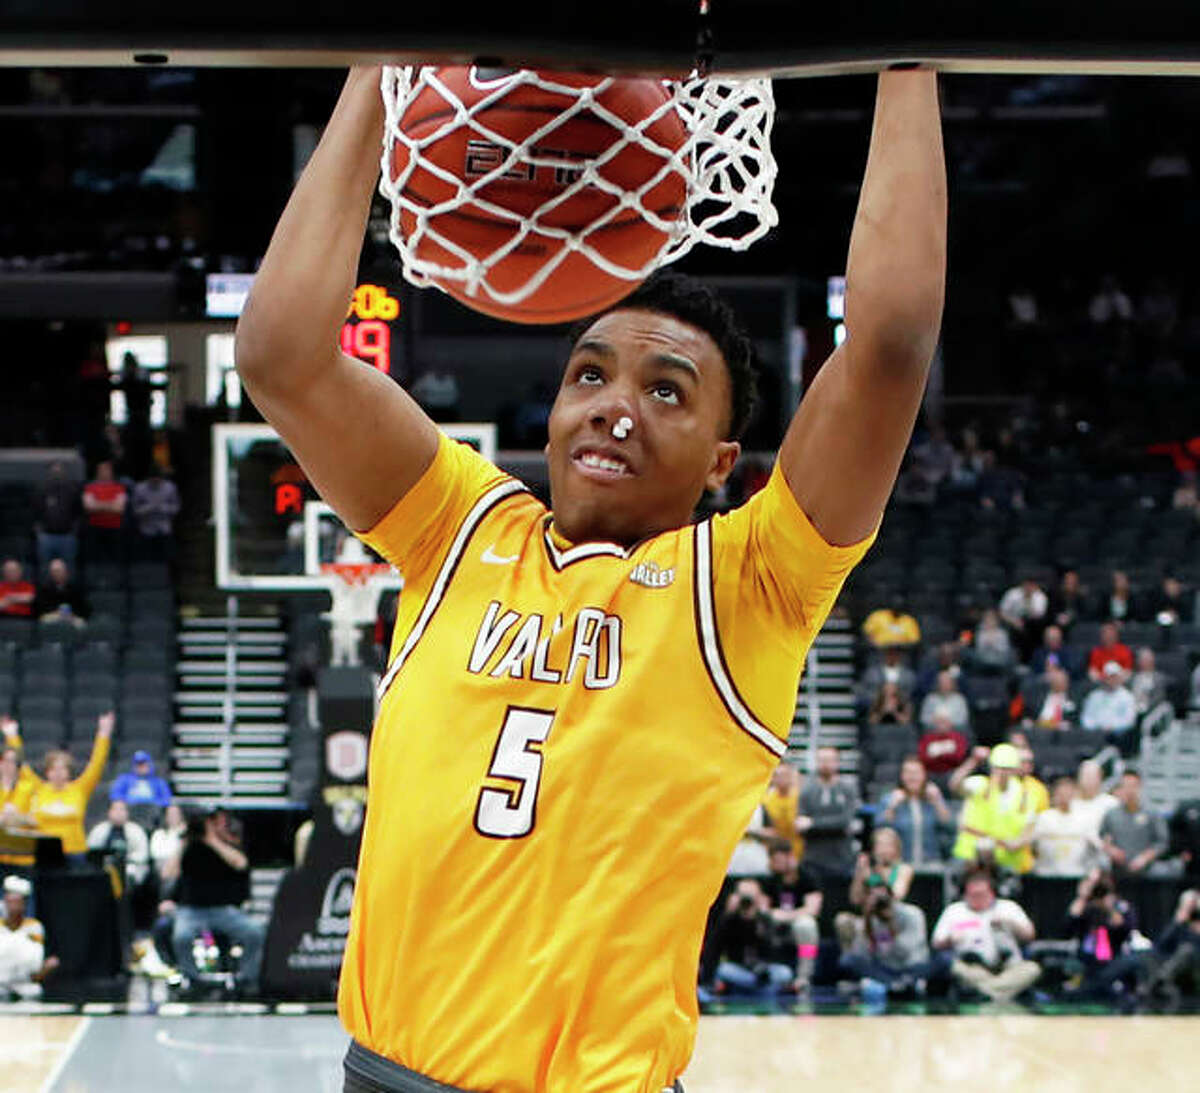 Valparaiso's Donovan Clay, a freshman from Alton, dunks Sunday during the Missouri Valley Conference Tourney title game in St. Louis.